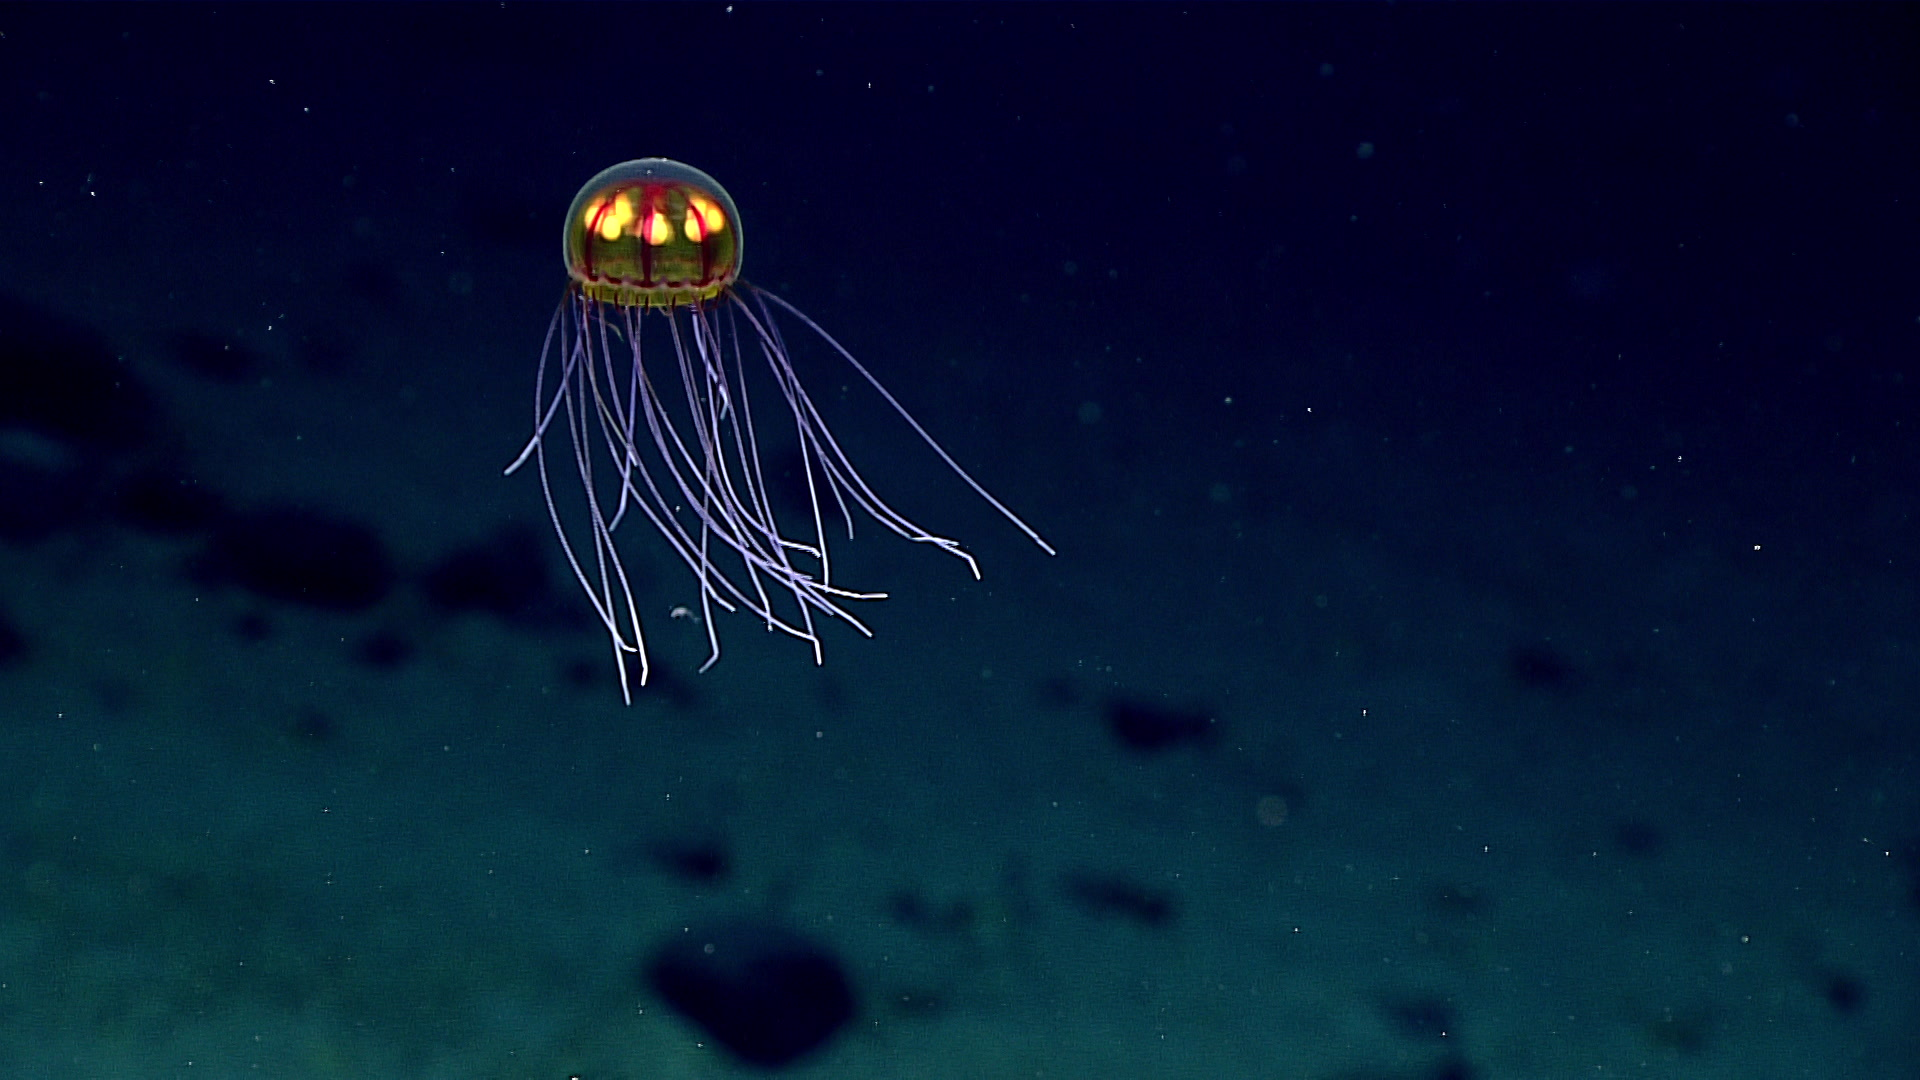 From the Mariana trench, noted elevated levels of toxic pollution